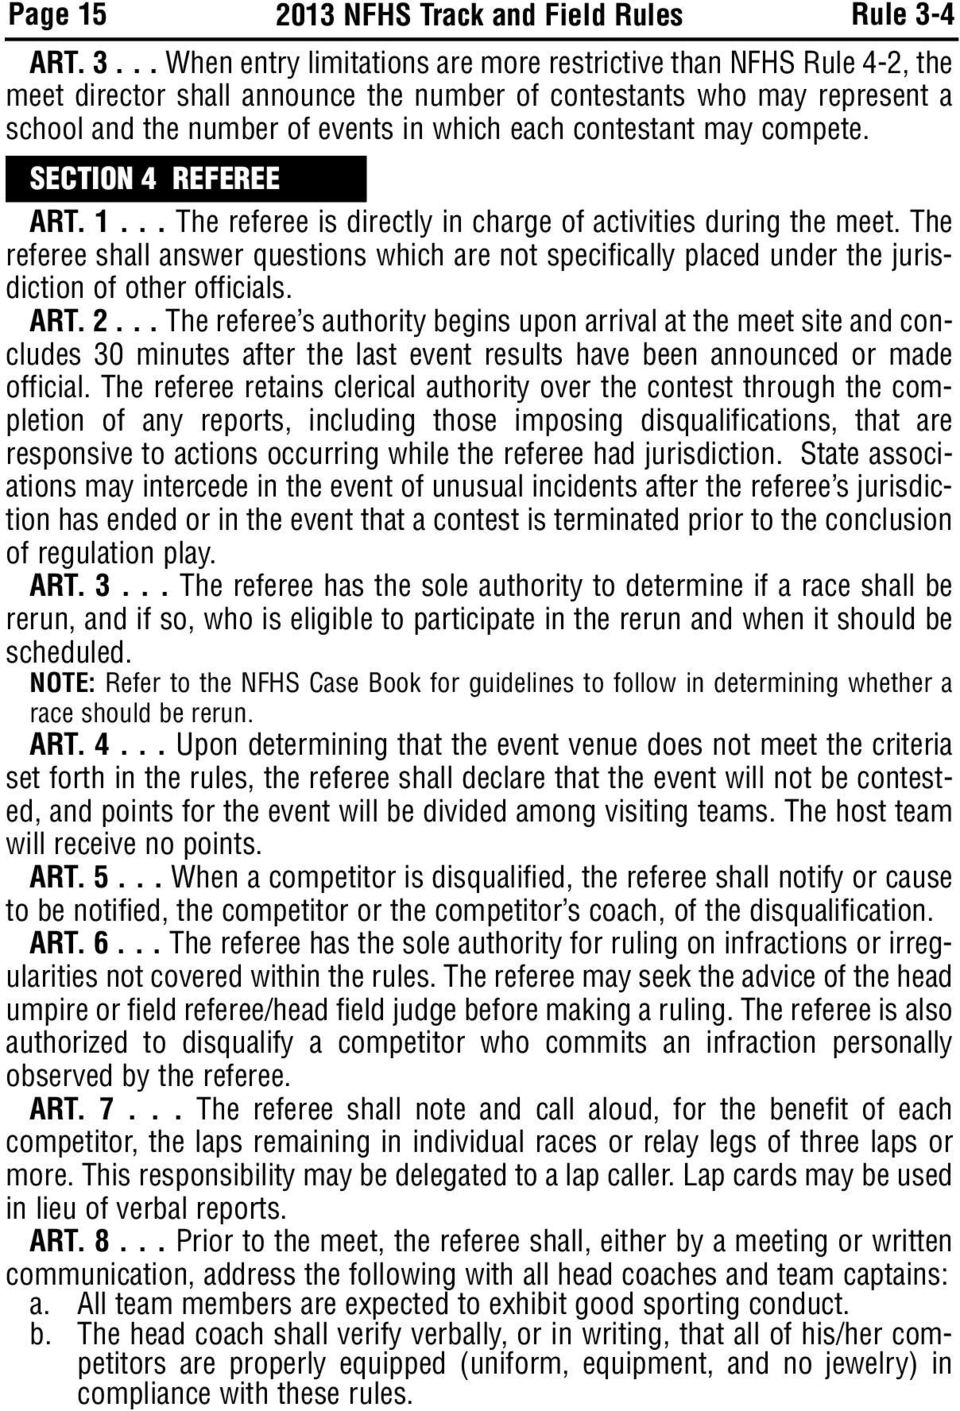 .. When entry limitations are more restrictive than NFHS Rule 4-2, the meet director shall announce the number of contestants who may represent a school and the number of events in which each